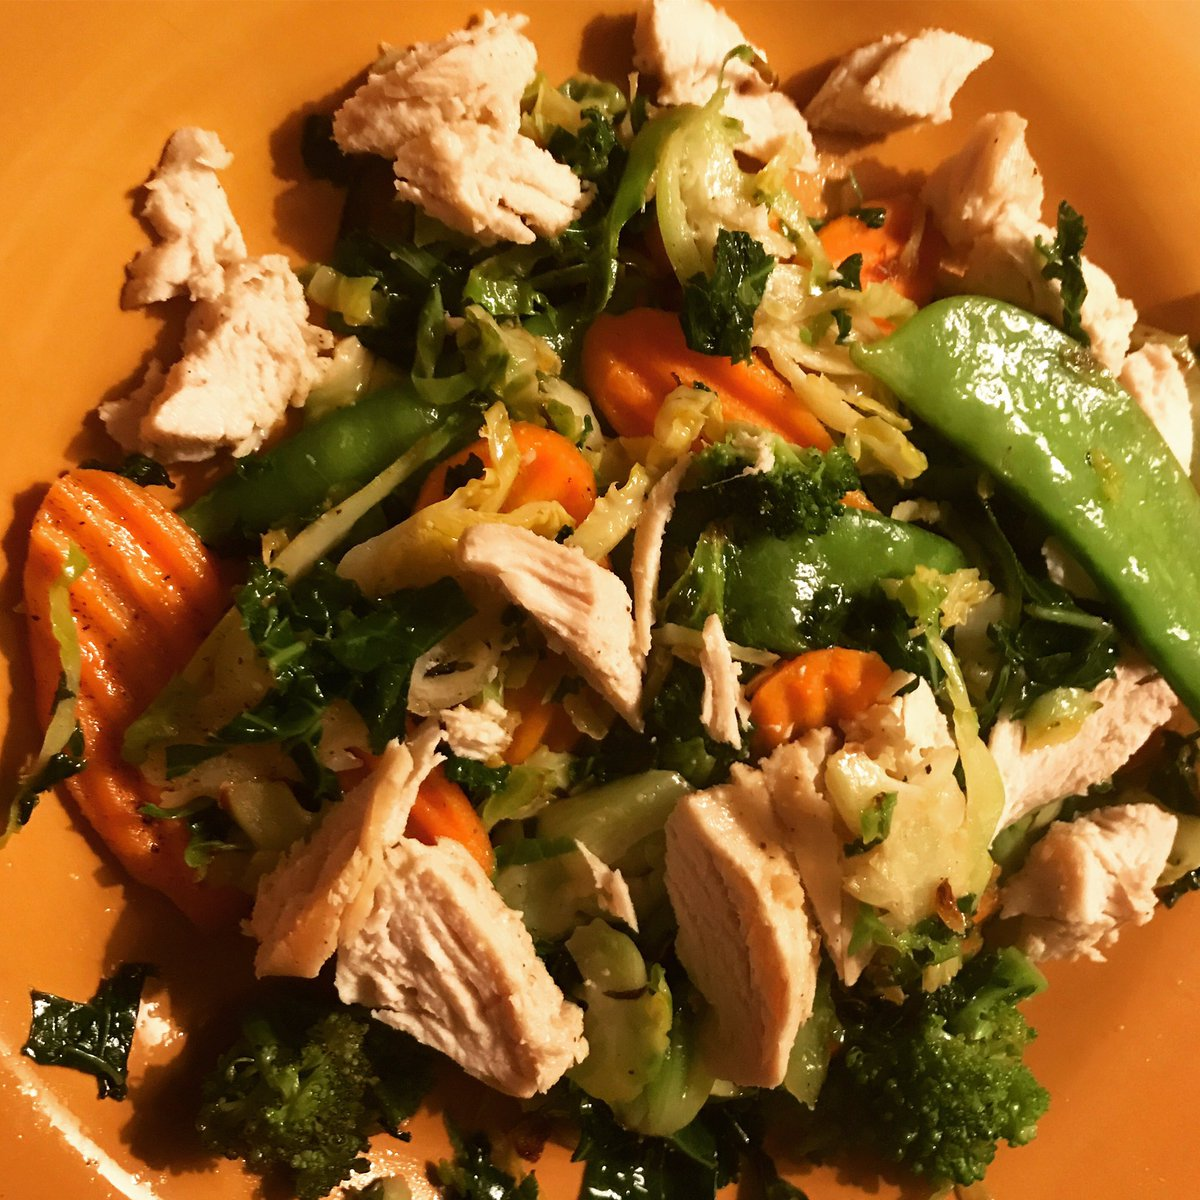 Enjoying my leafy greens  and carrots  as I eat clean &amp; healthy for summer! #doingmybest @SamHeughan @MyPeakChallenge<br>http://pic.twitter.com/QT24UzheIj